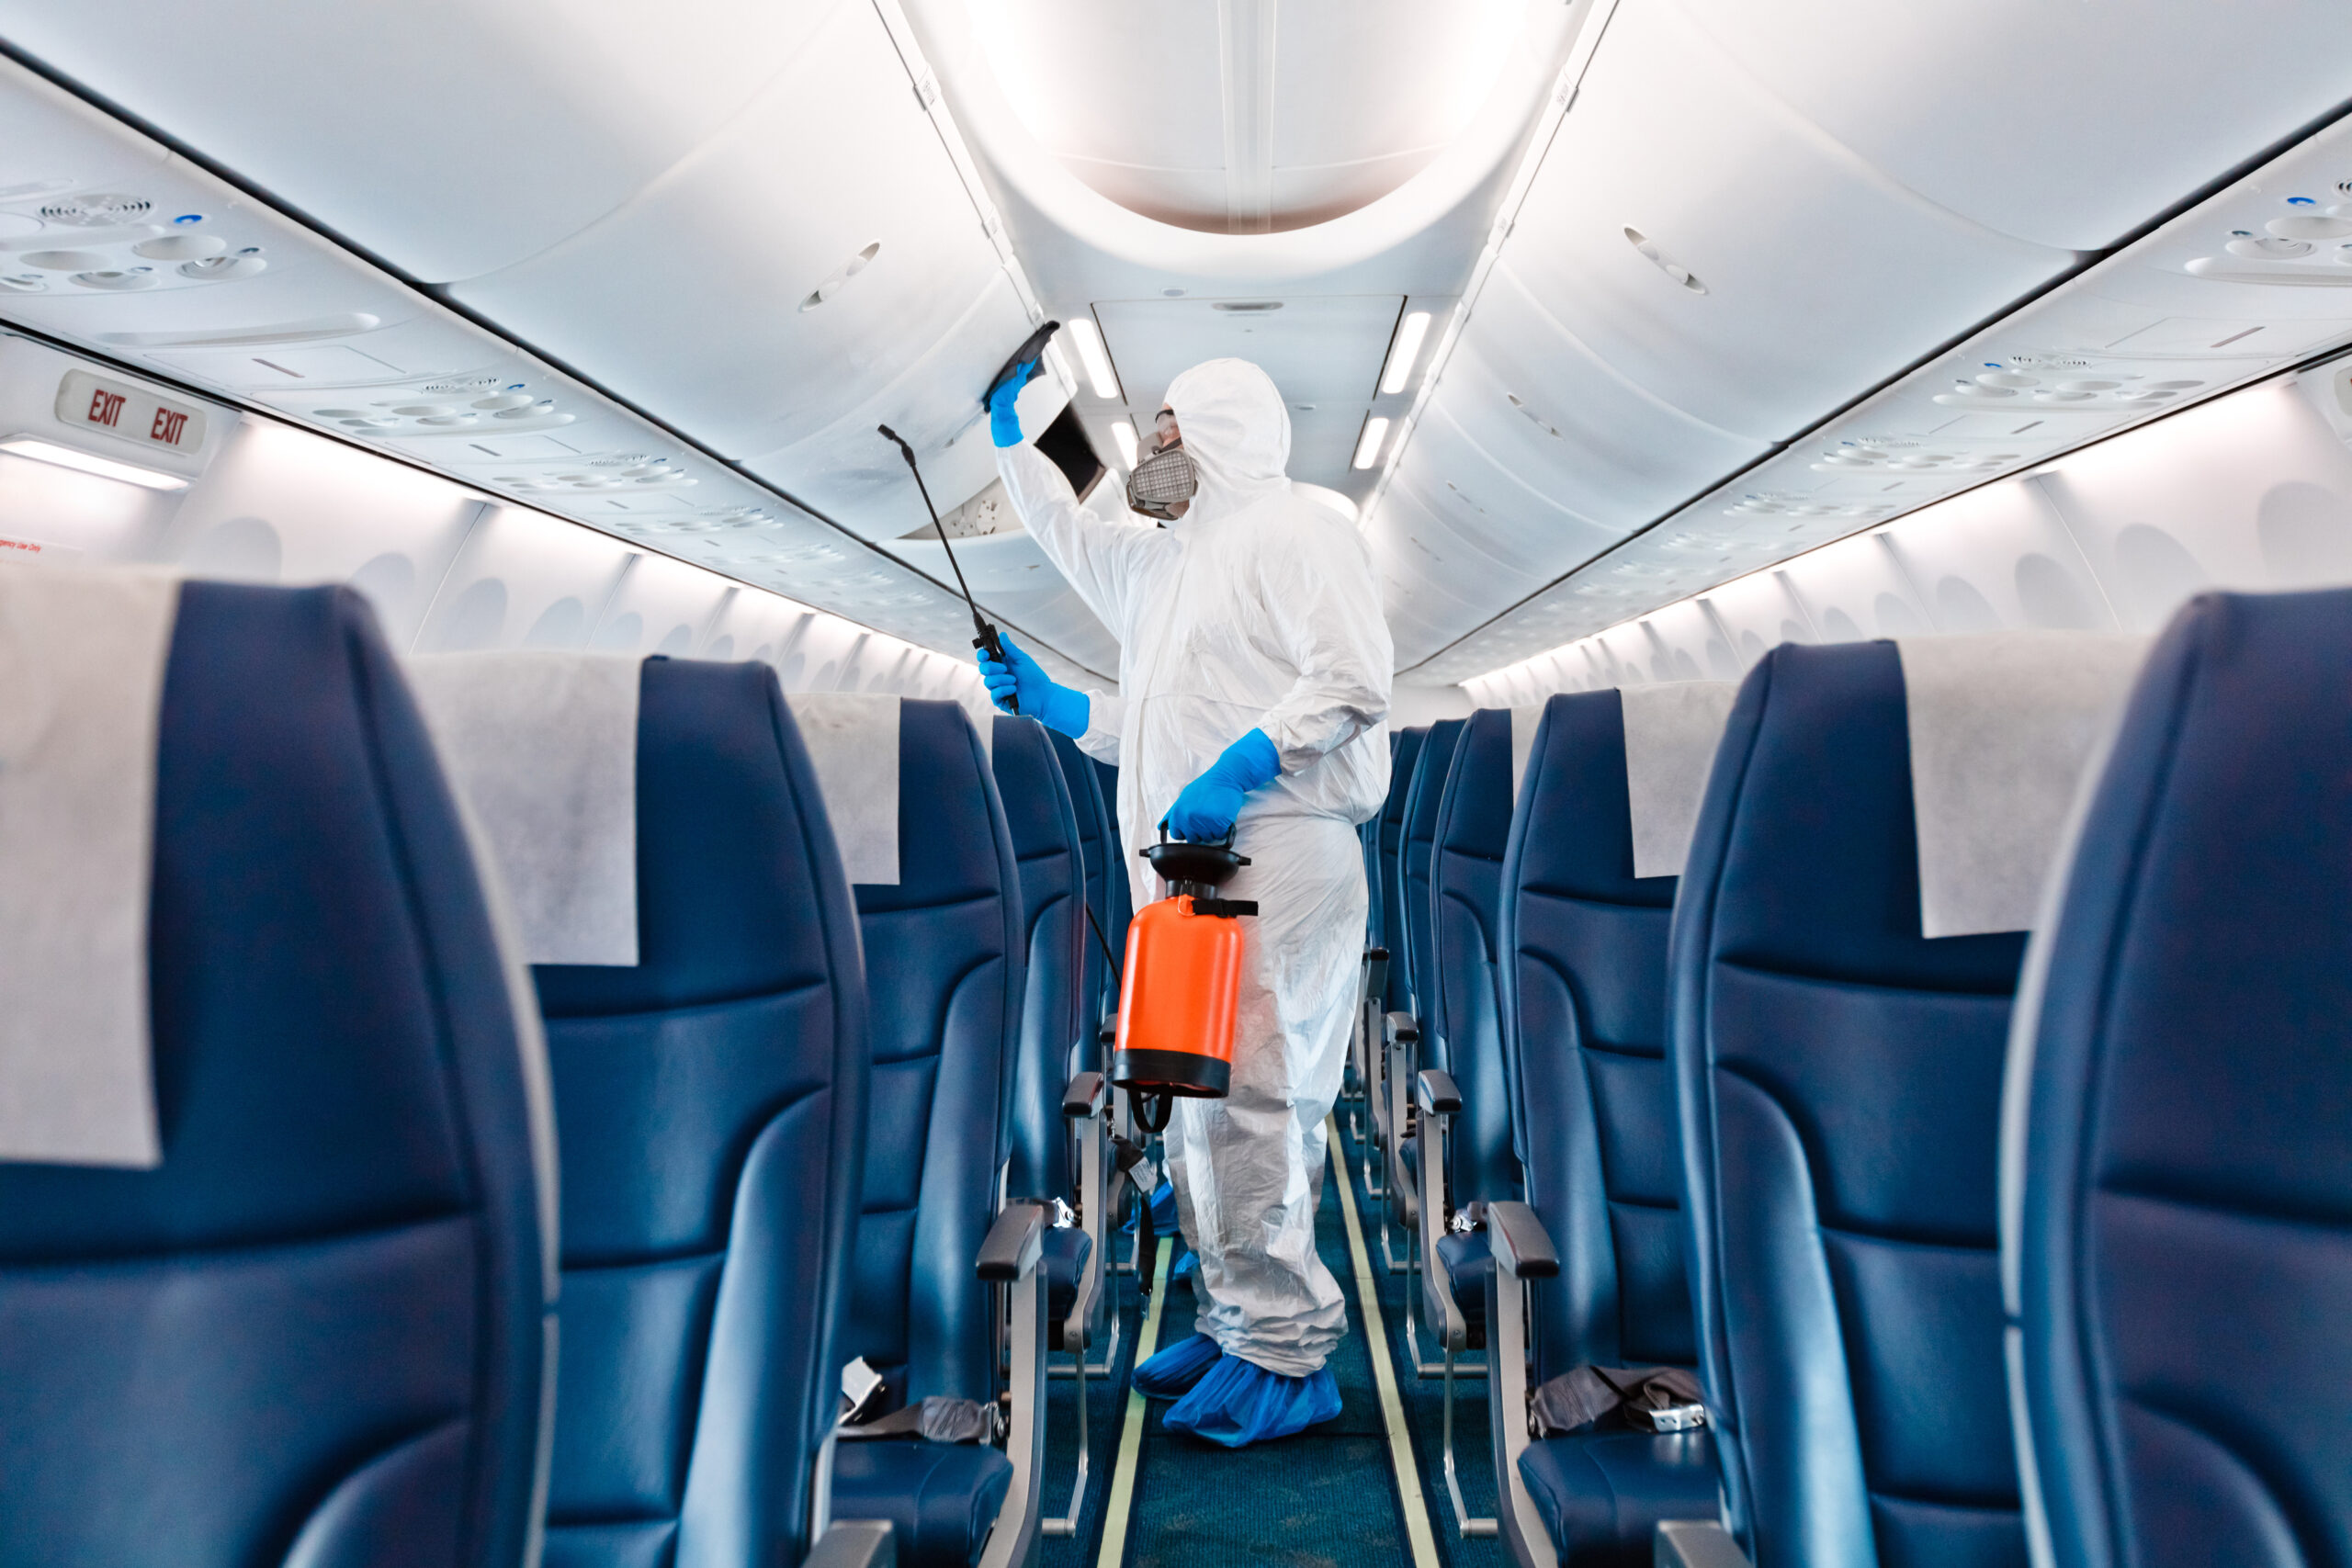 COVID-19 aircraft disinfection